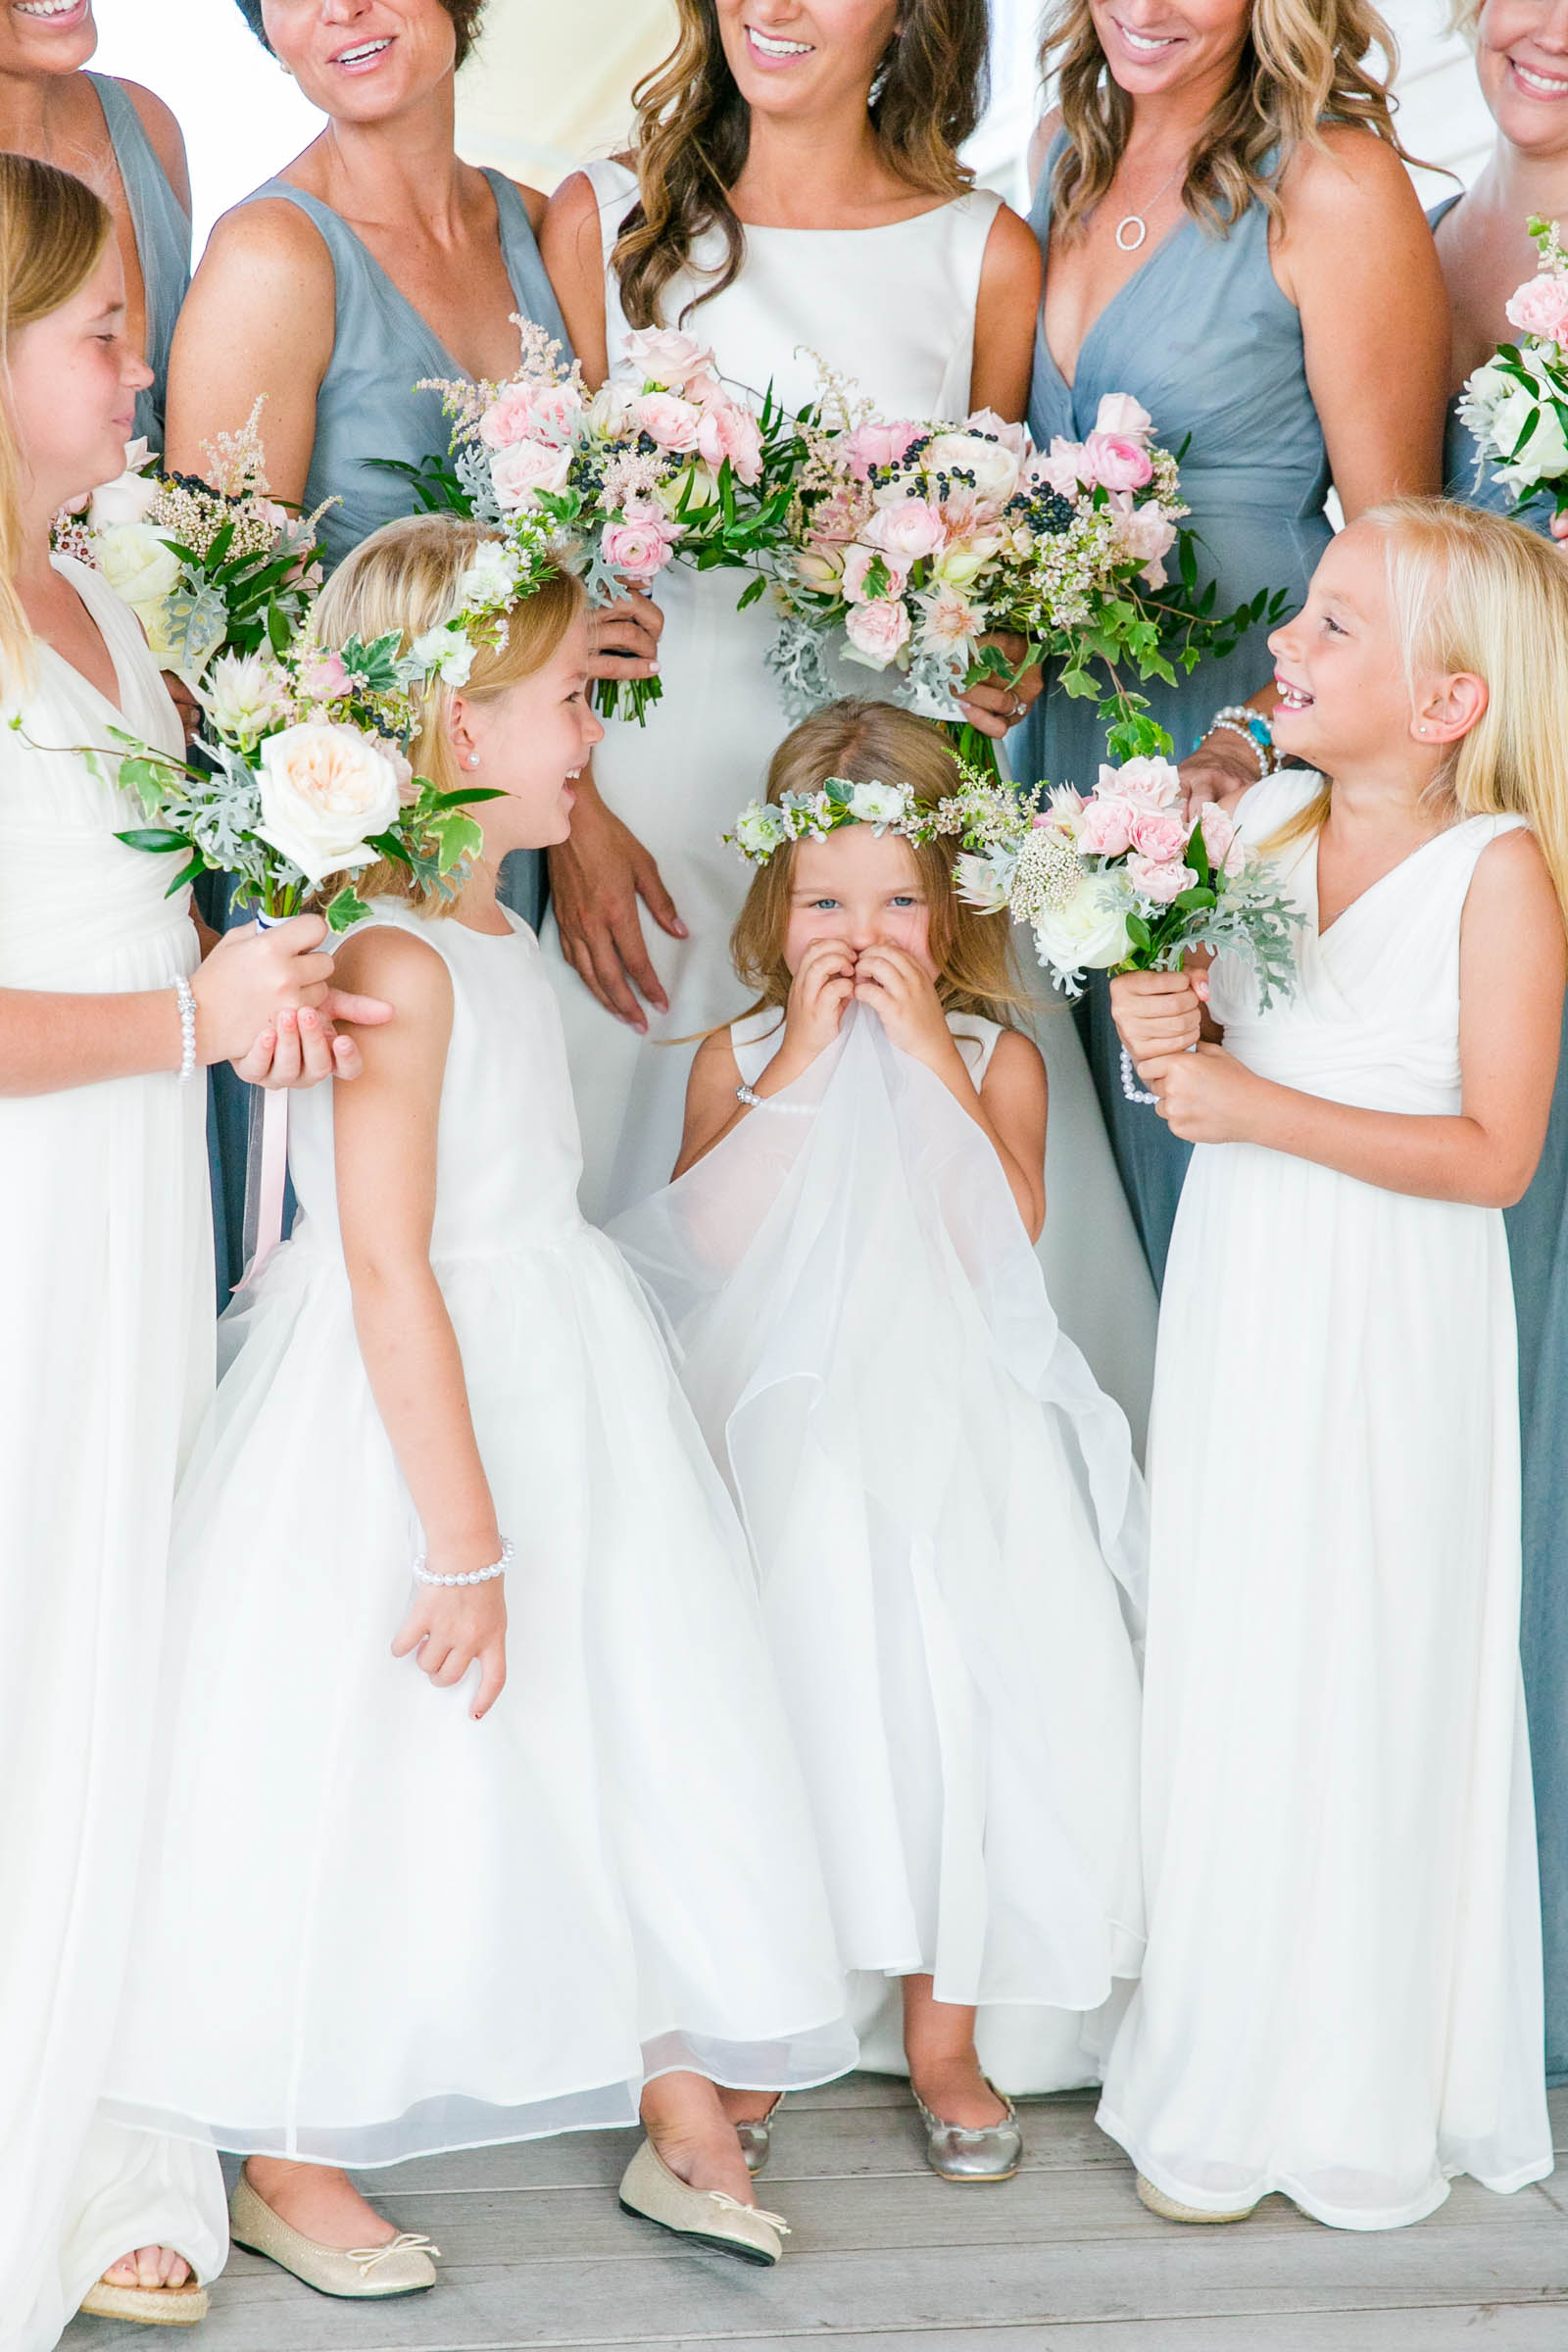 Cute flower girls with bridal party - photo by Dana Cubbage Weddings